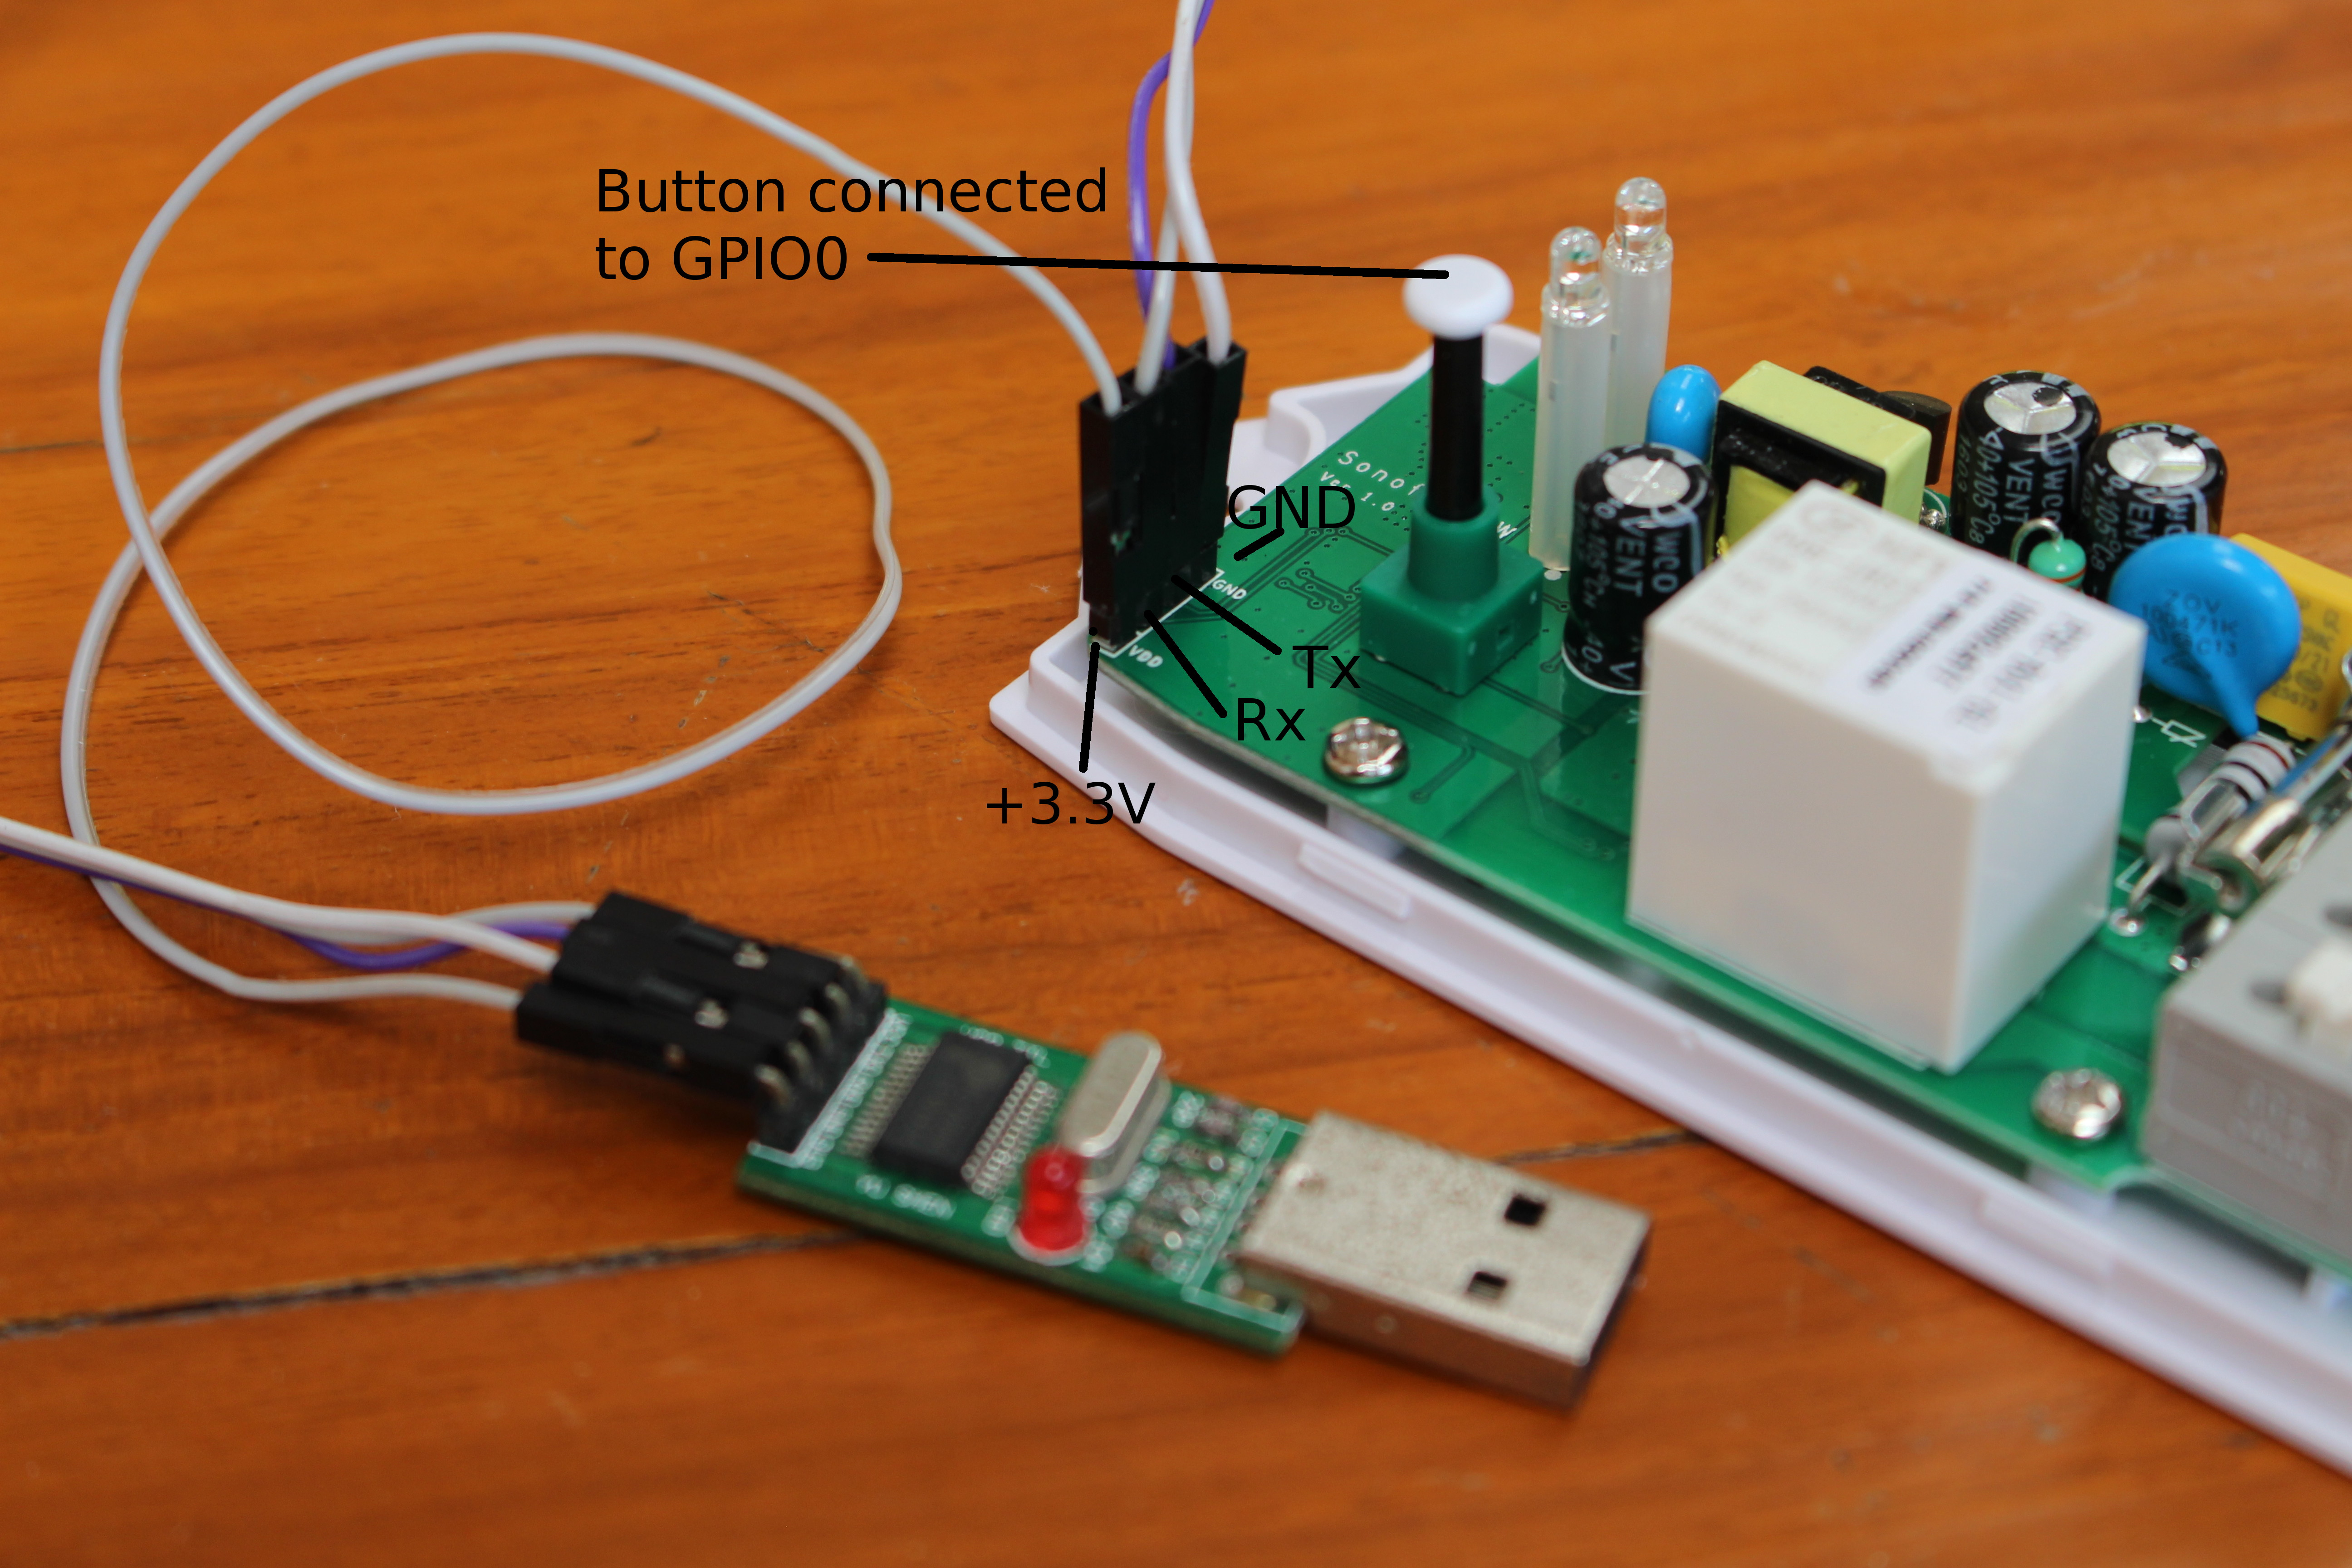 Building And Flashing Espurna Open Source Firmware To Sonoff Pow Wireless Switch on 4 pin relay